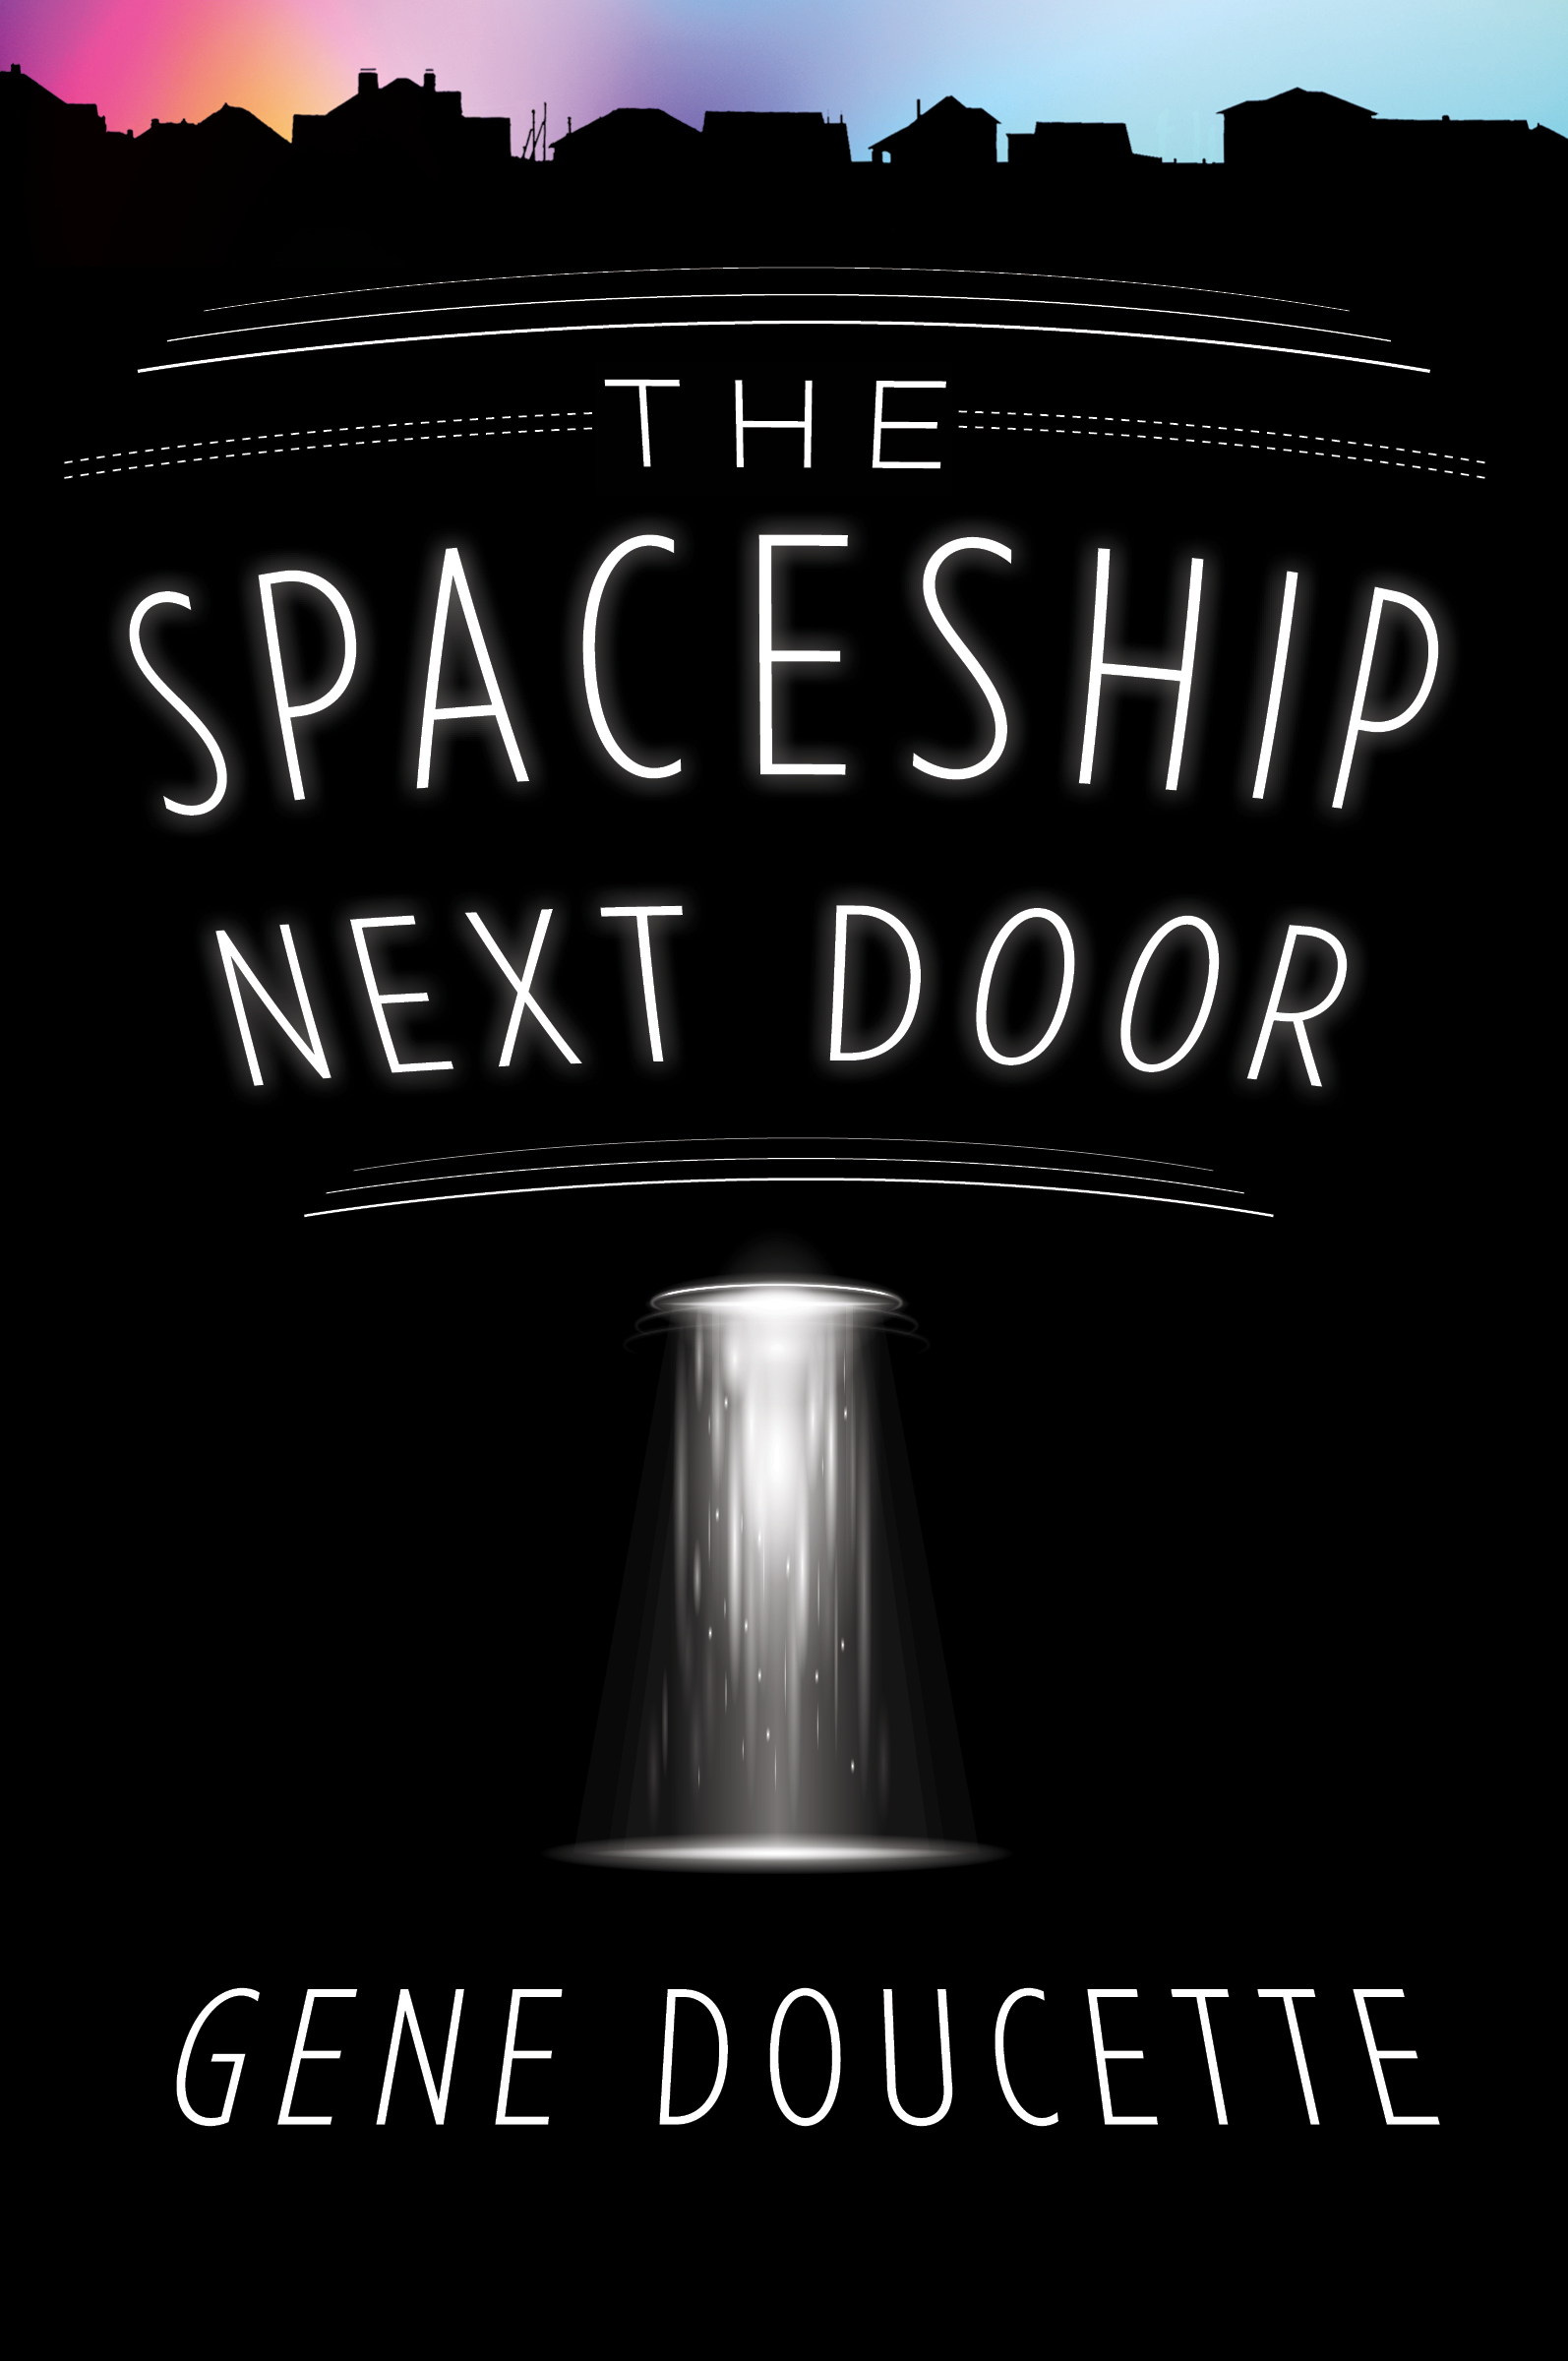 The spaceship next door / Gene Doucette